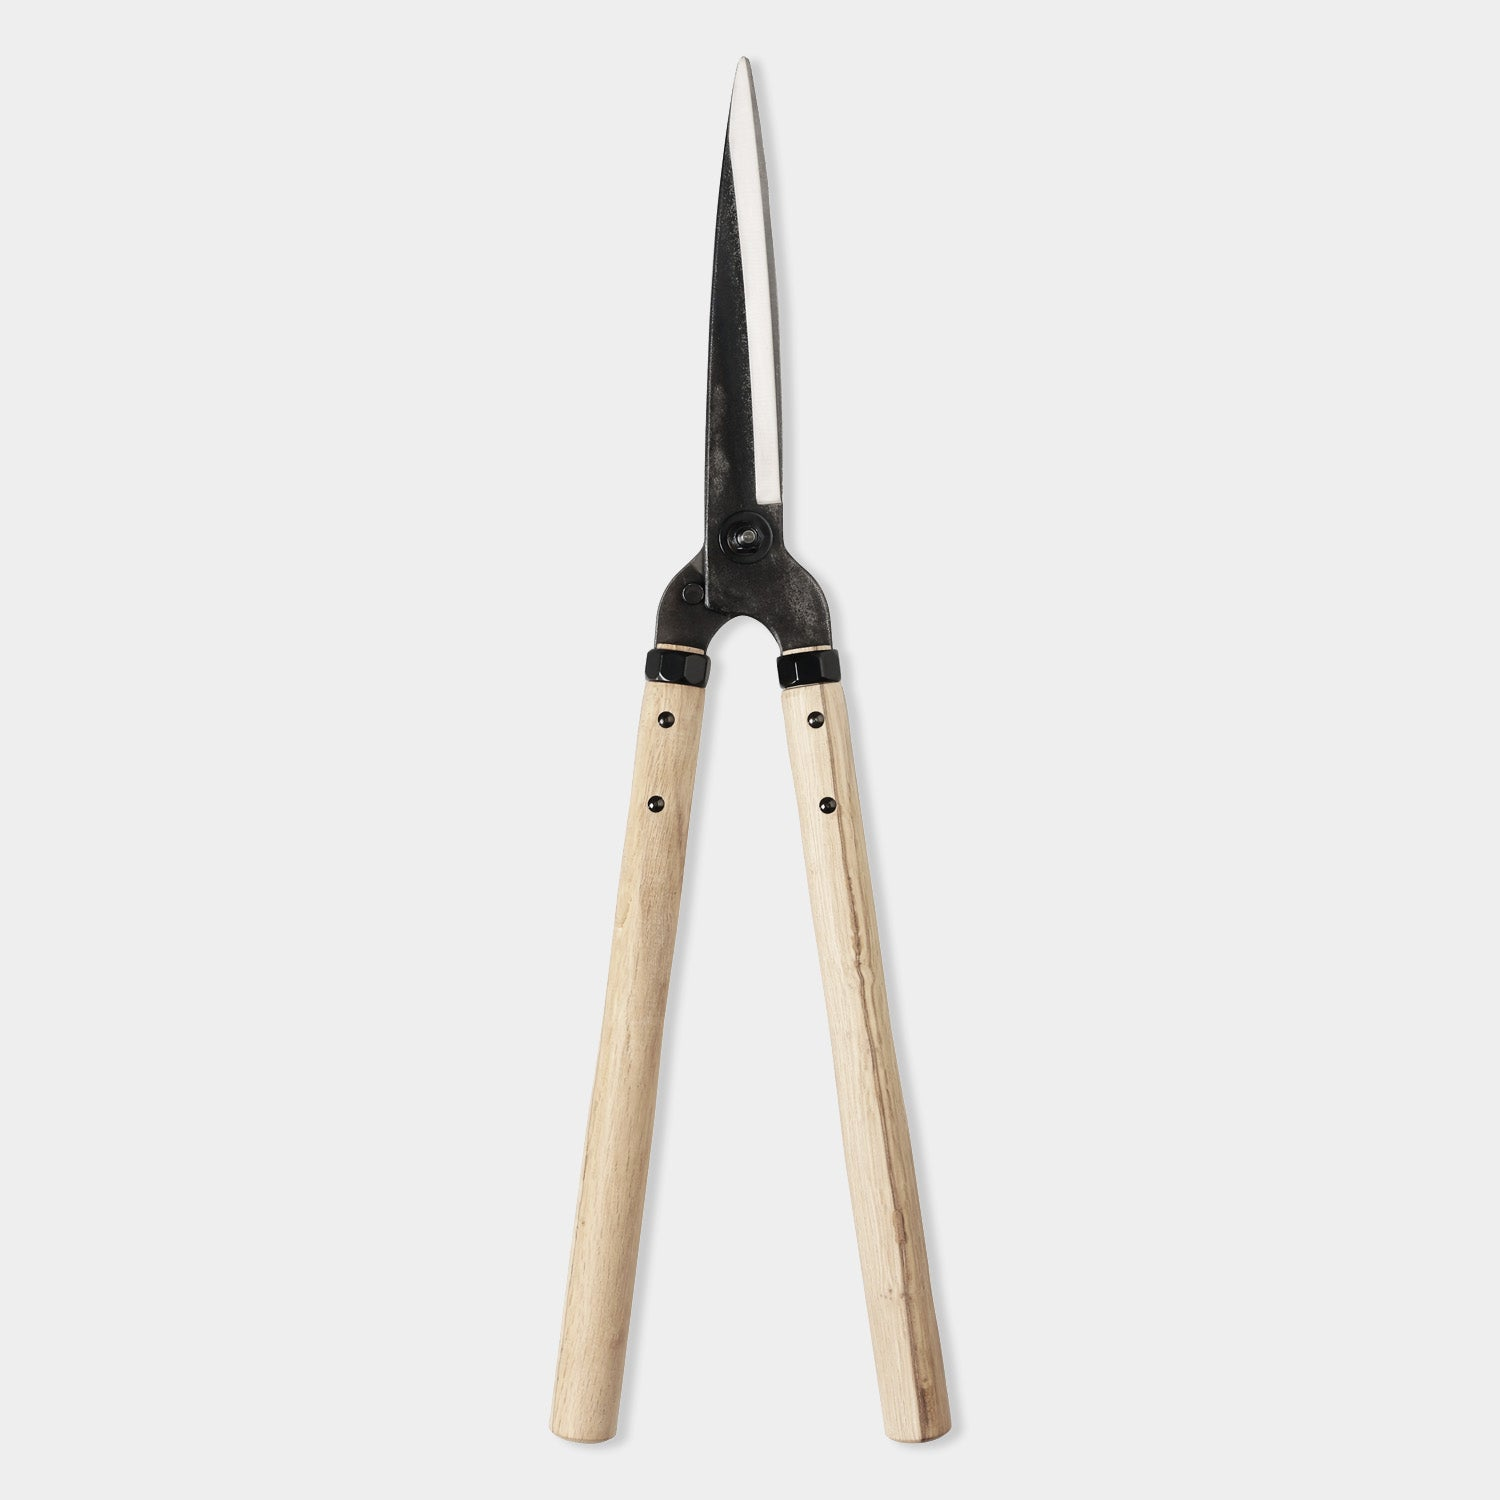 Niwaki Japanese Garden Shears